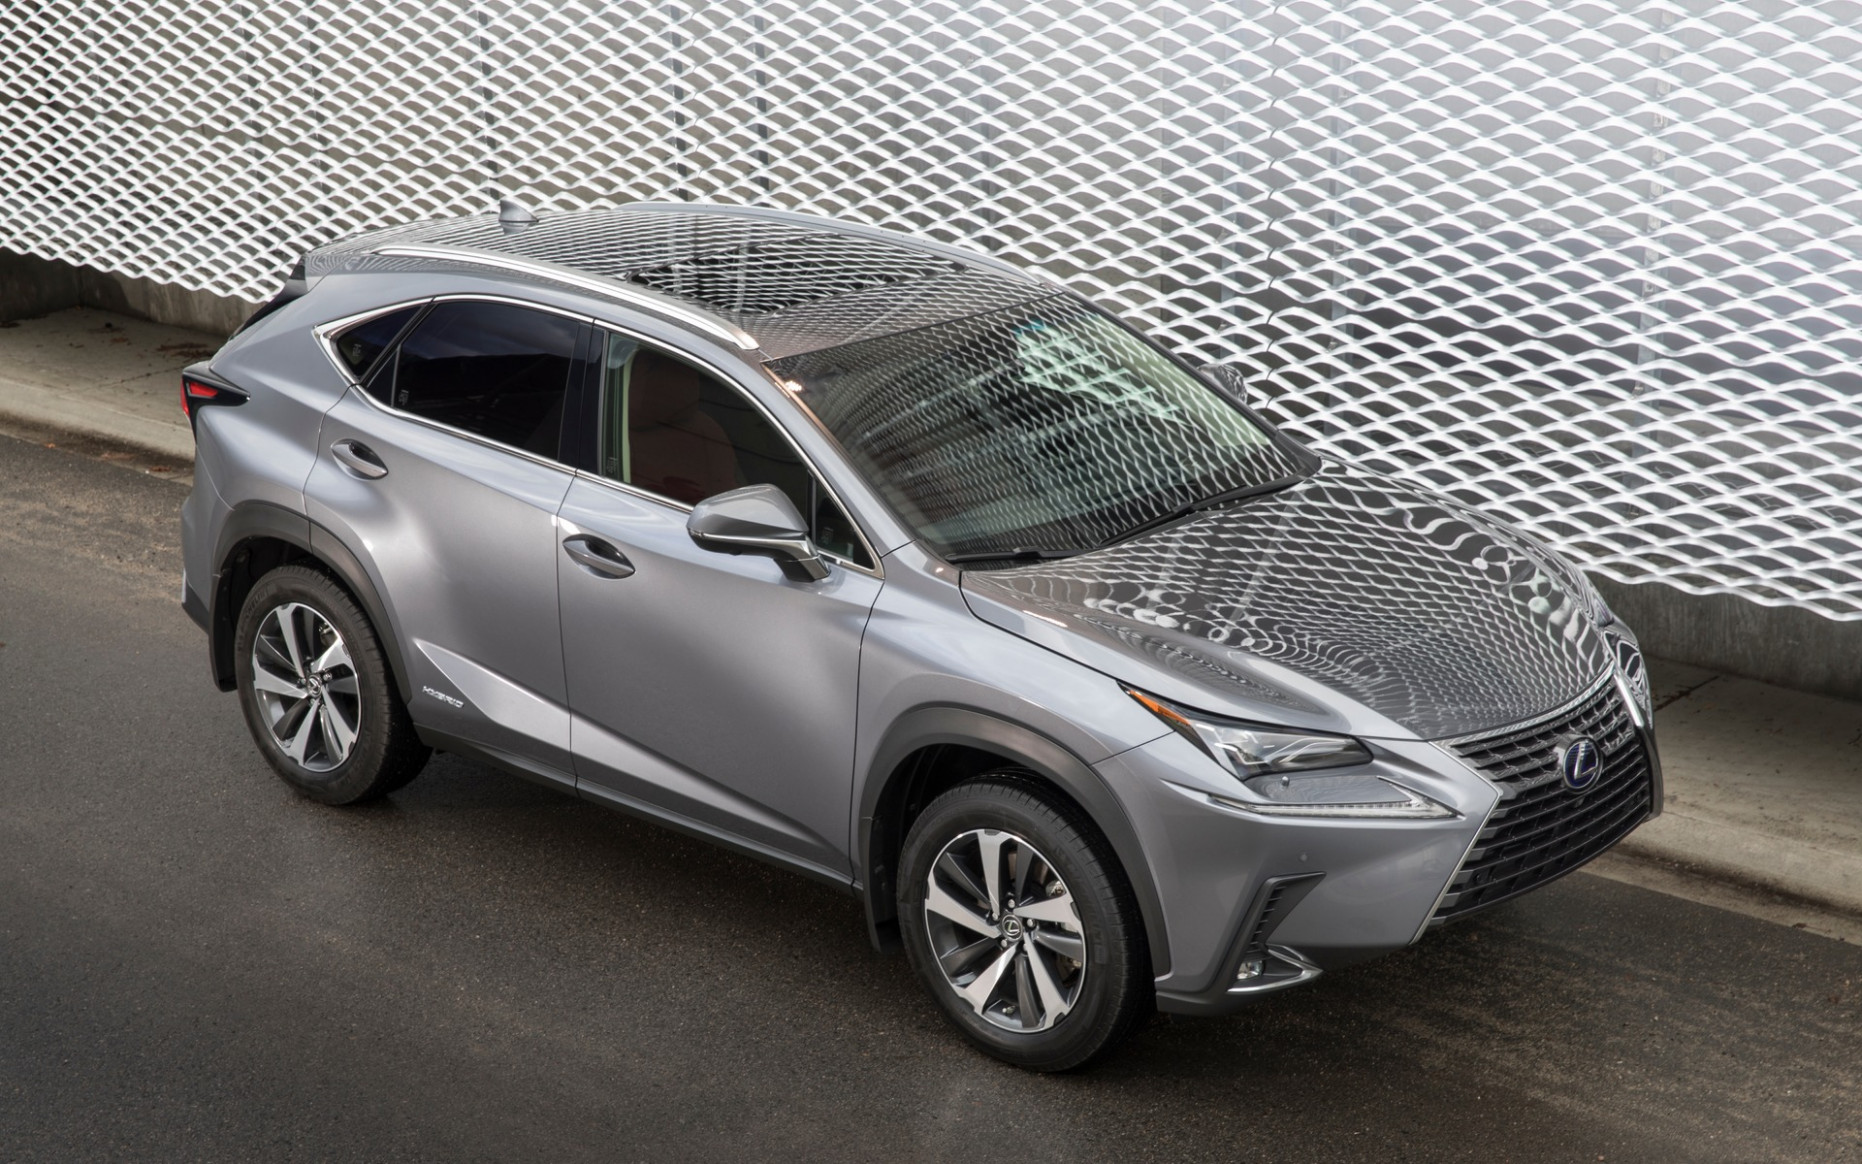 Price and Review When Do 2022 Lexus Nx Come Out